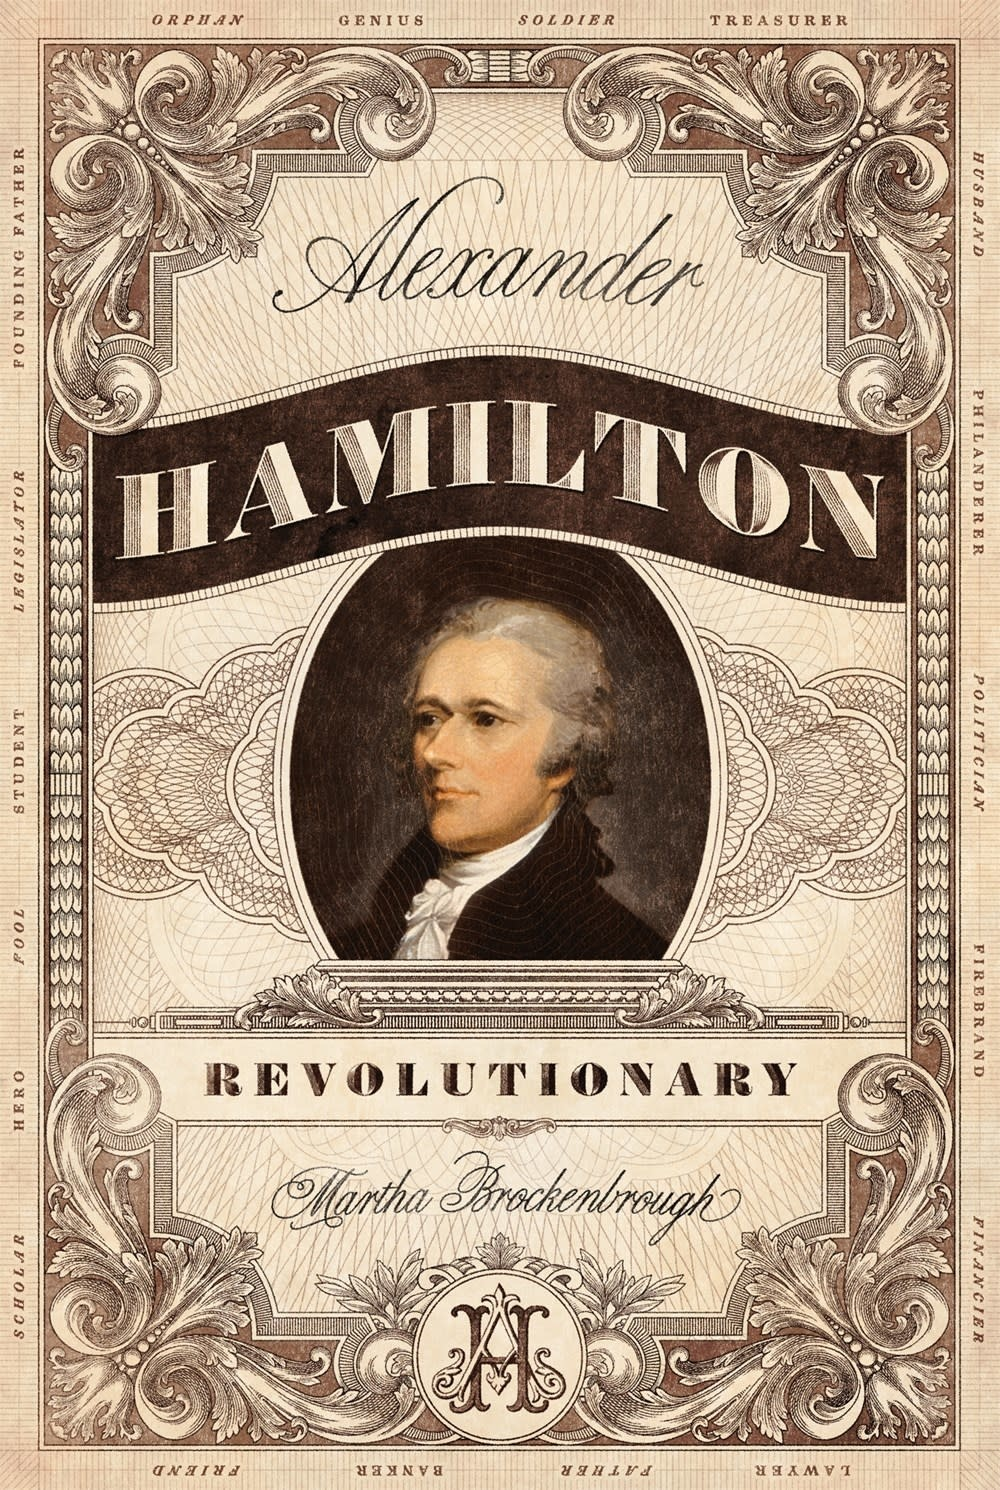 Square Fish Alexander Hamilton, Revolutionary